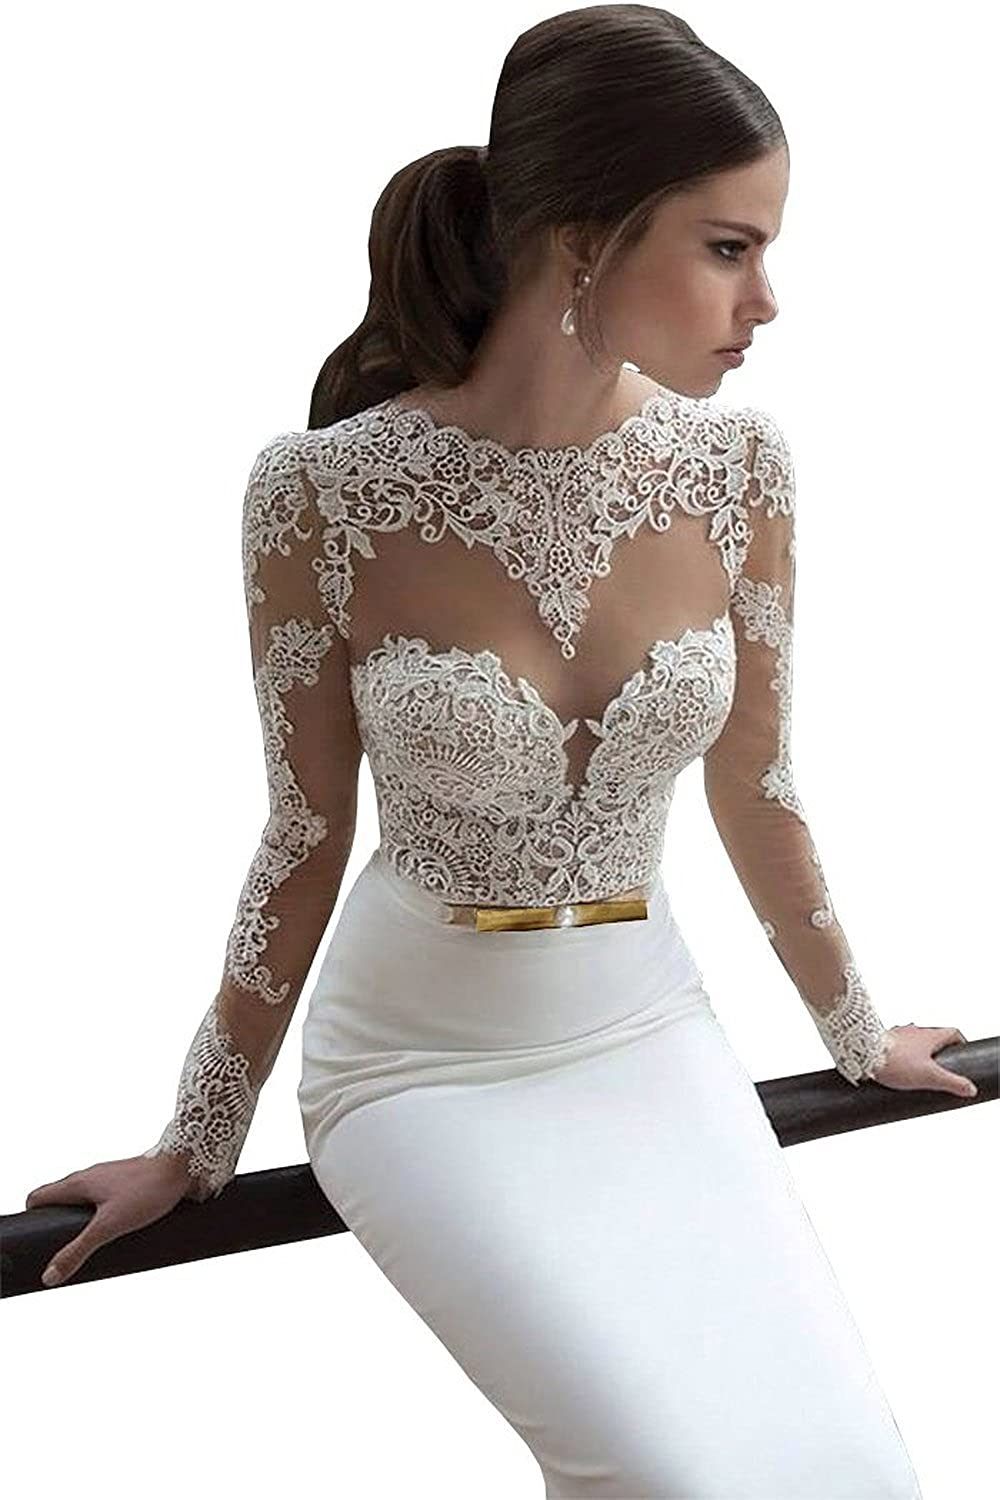 ok dress long sleeve lace mermaid wedding prom dresses 2015 backless bridal gowns at amazon womens clothing store